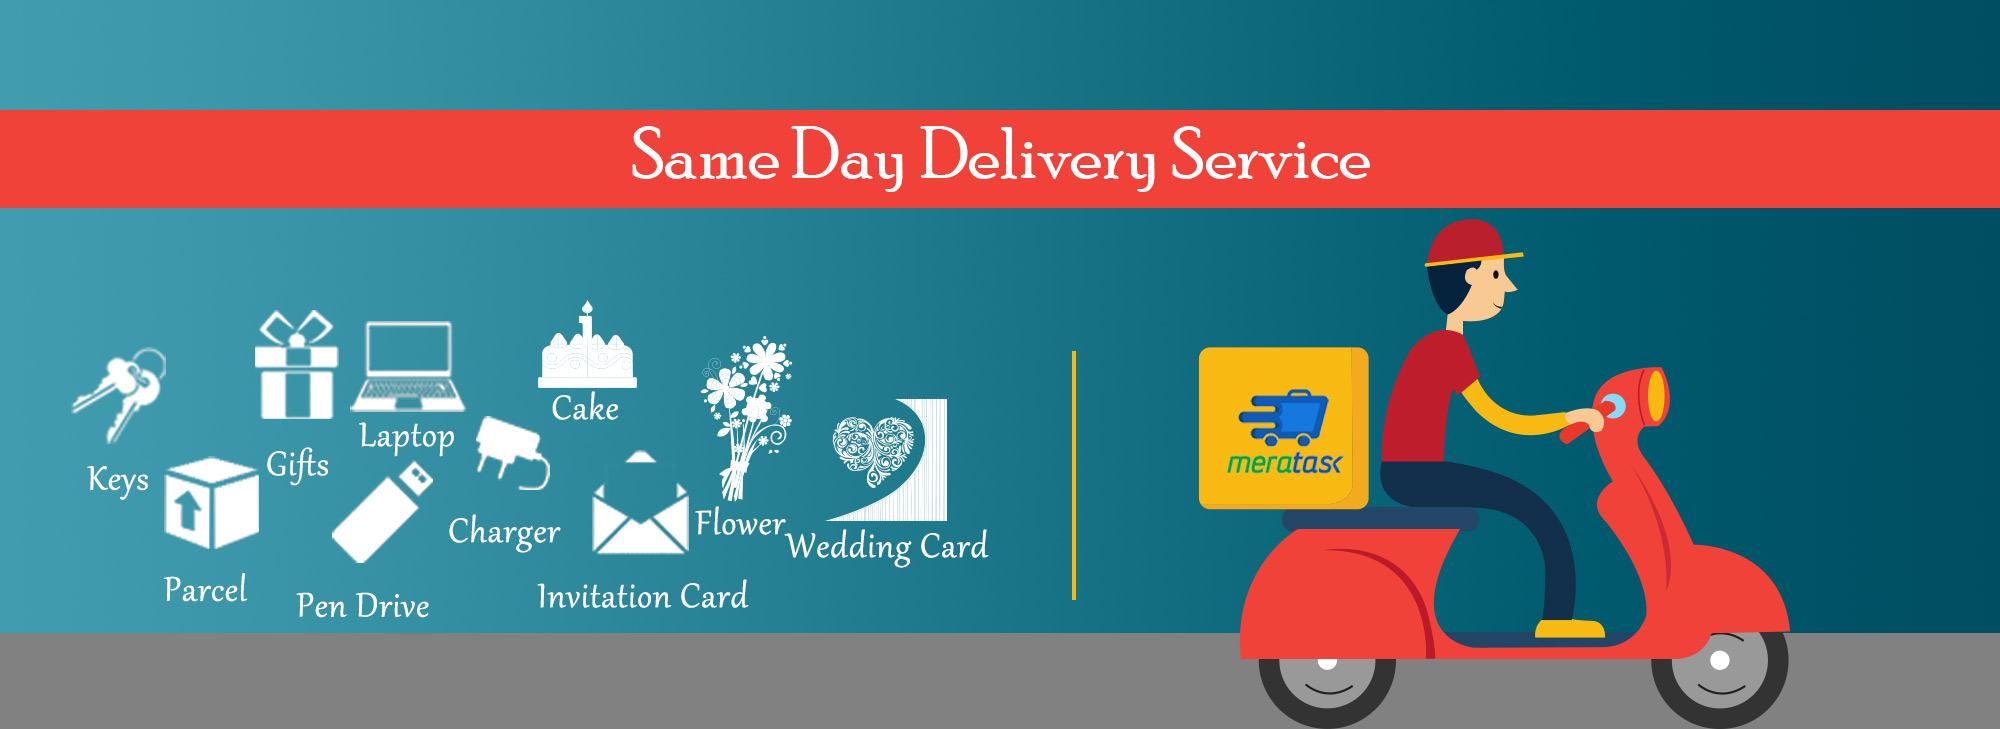 Importance of Same Day Delivery service In Modern Life